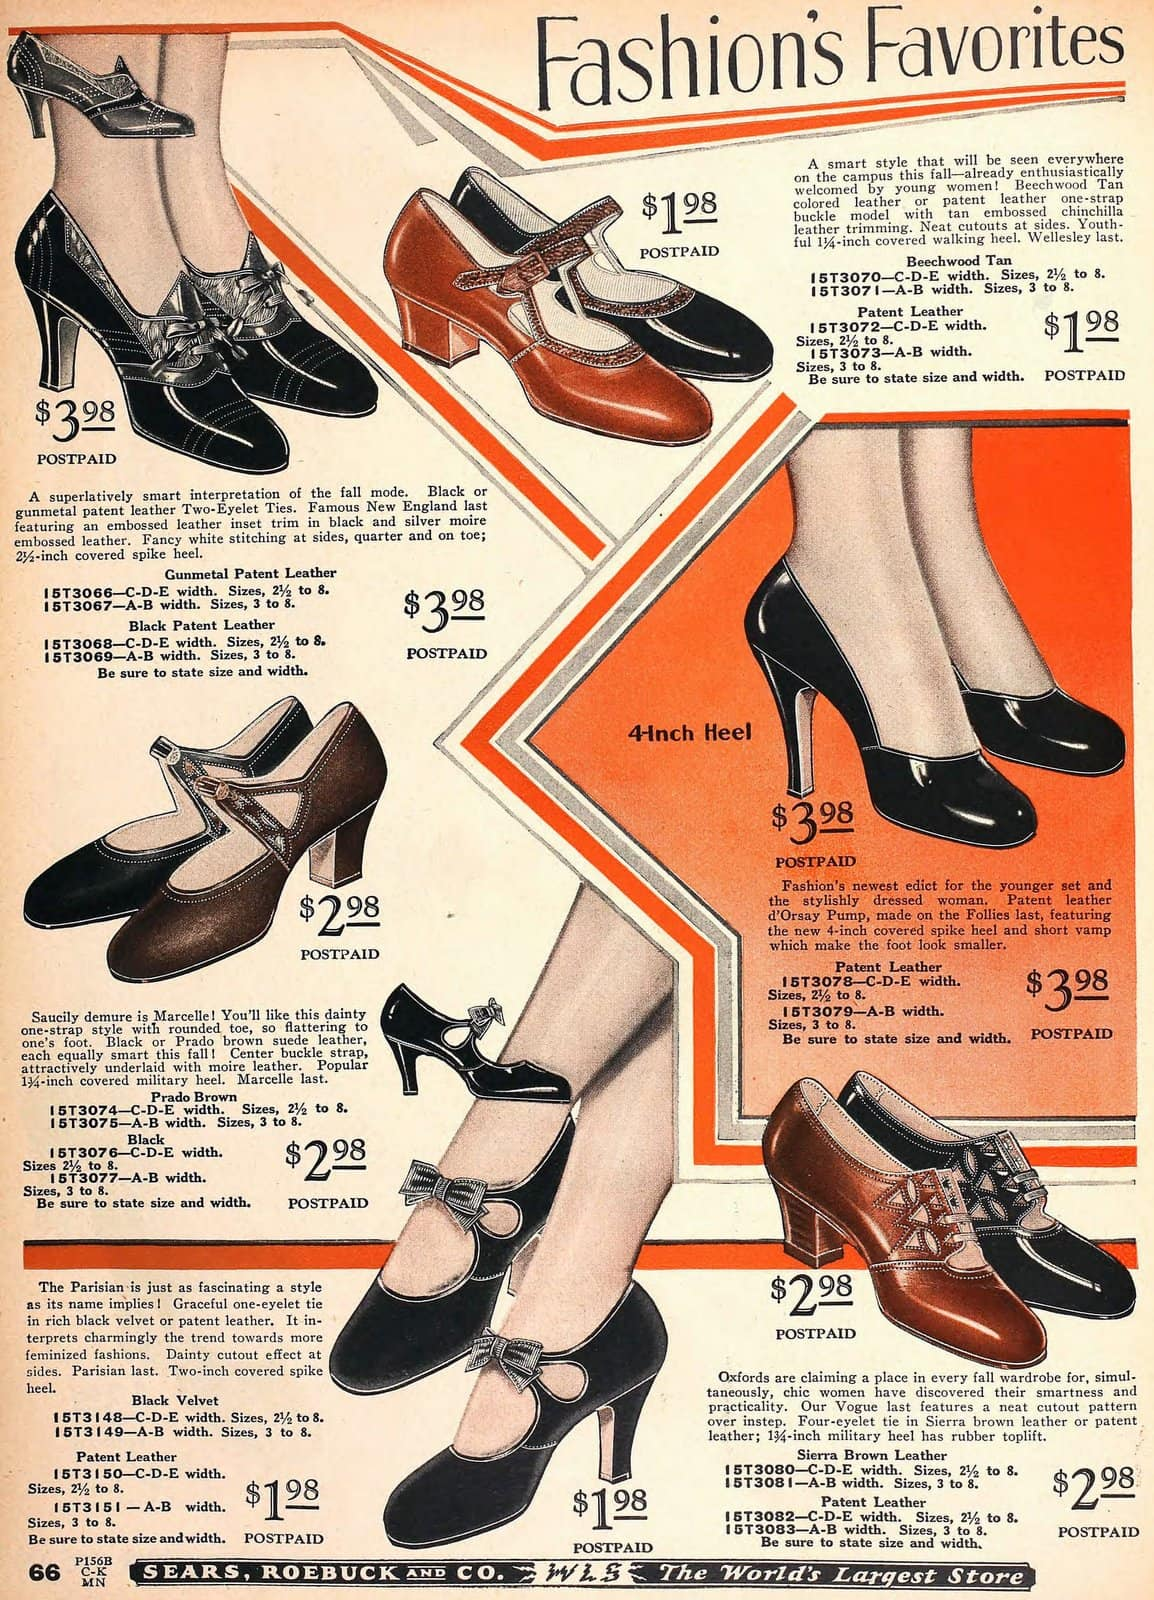 1920s shoes for women from 1929 (1)